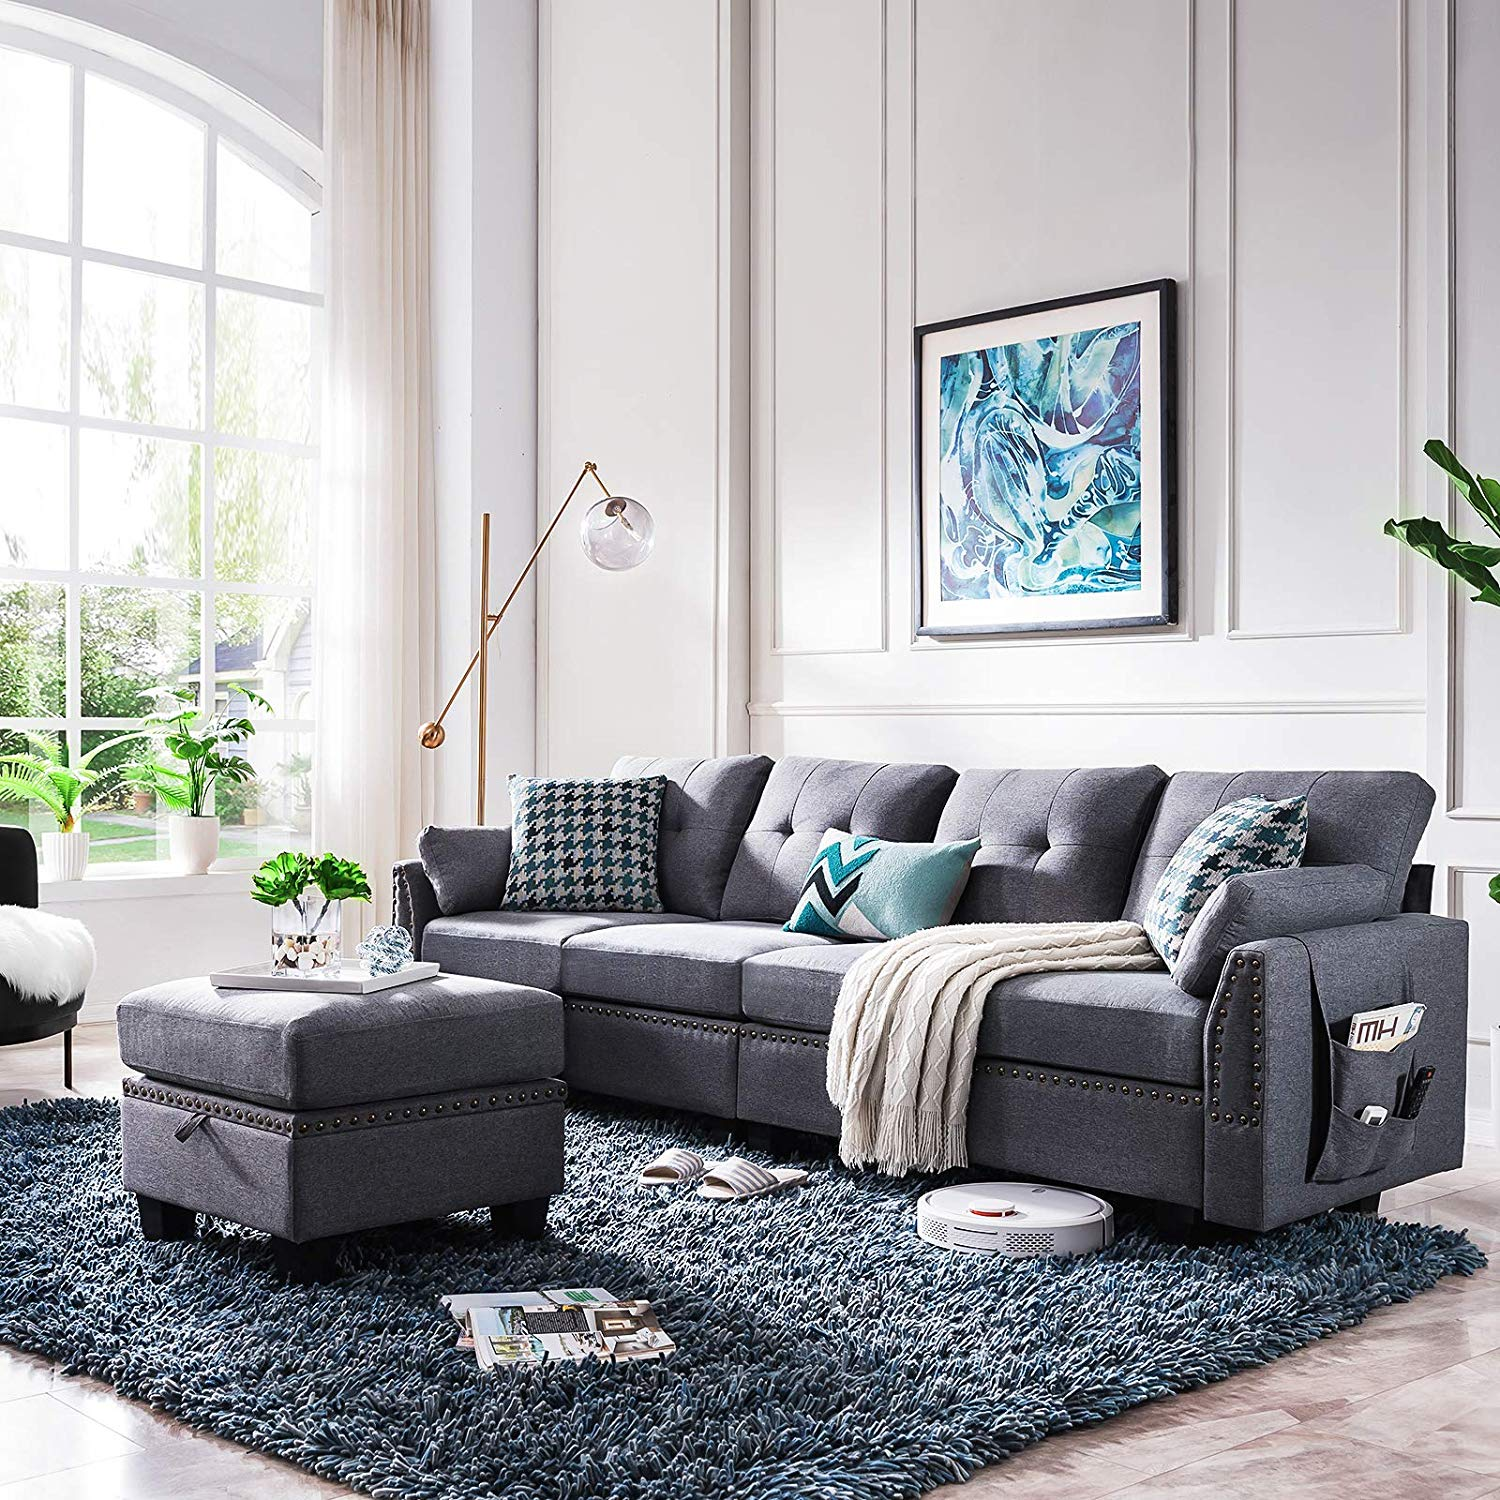 Picture of: Honbay Reversible Sectional Sofa Couch For Living Room Stylebywood